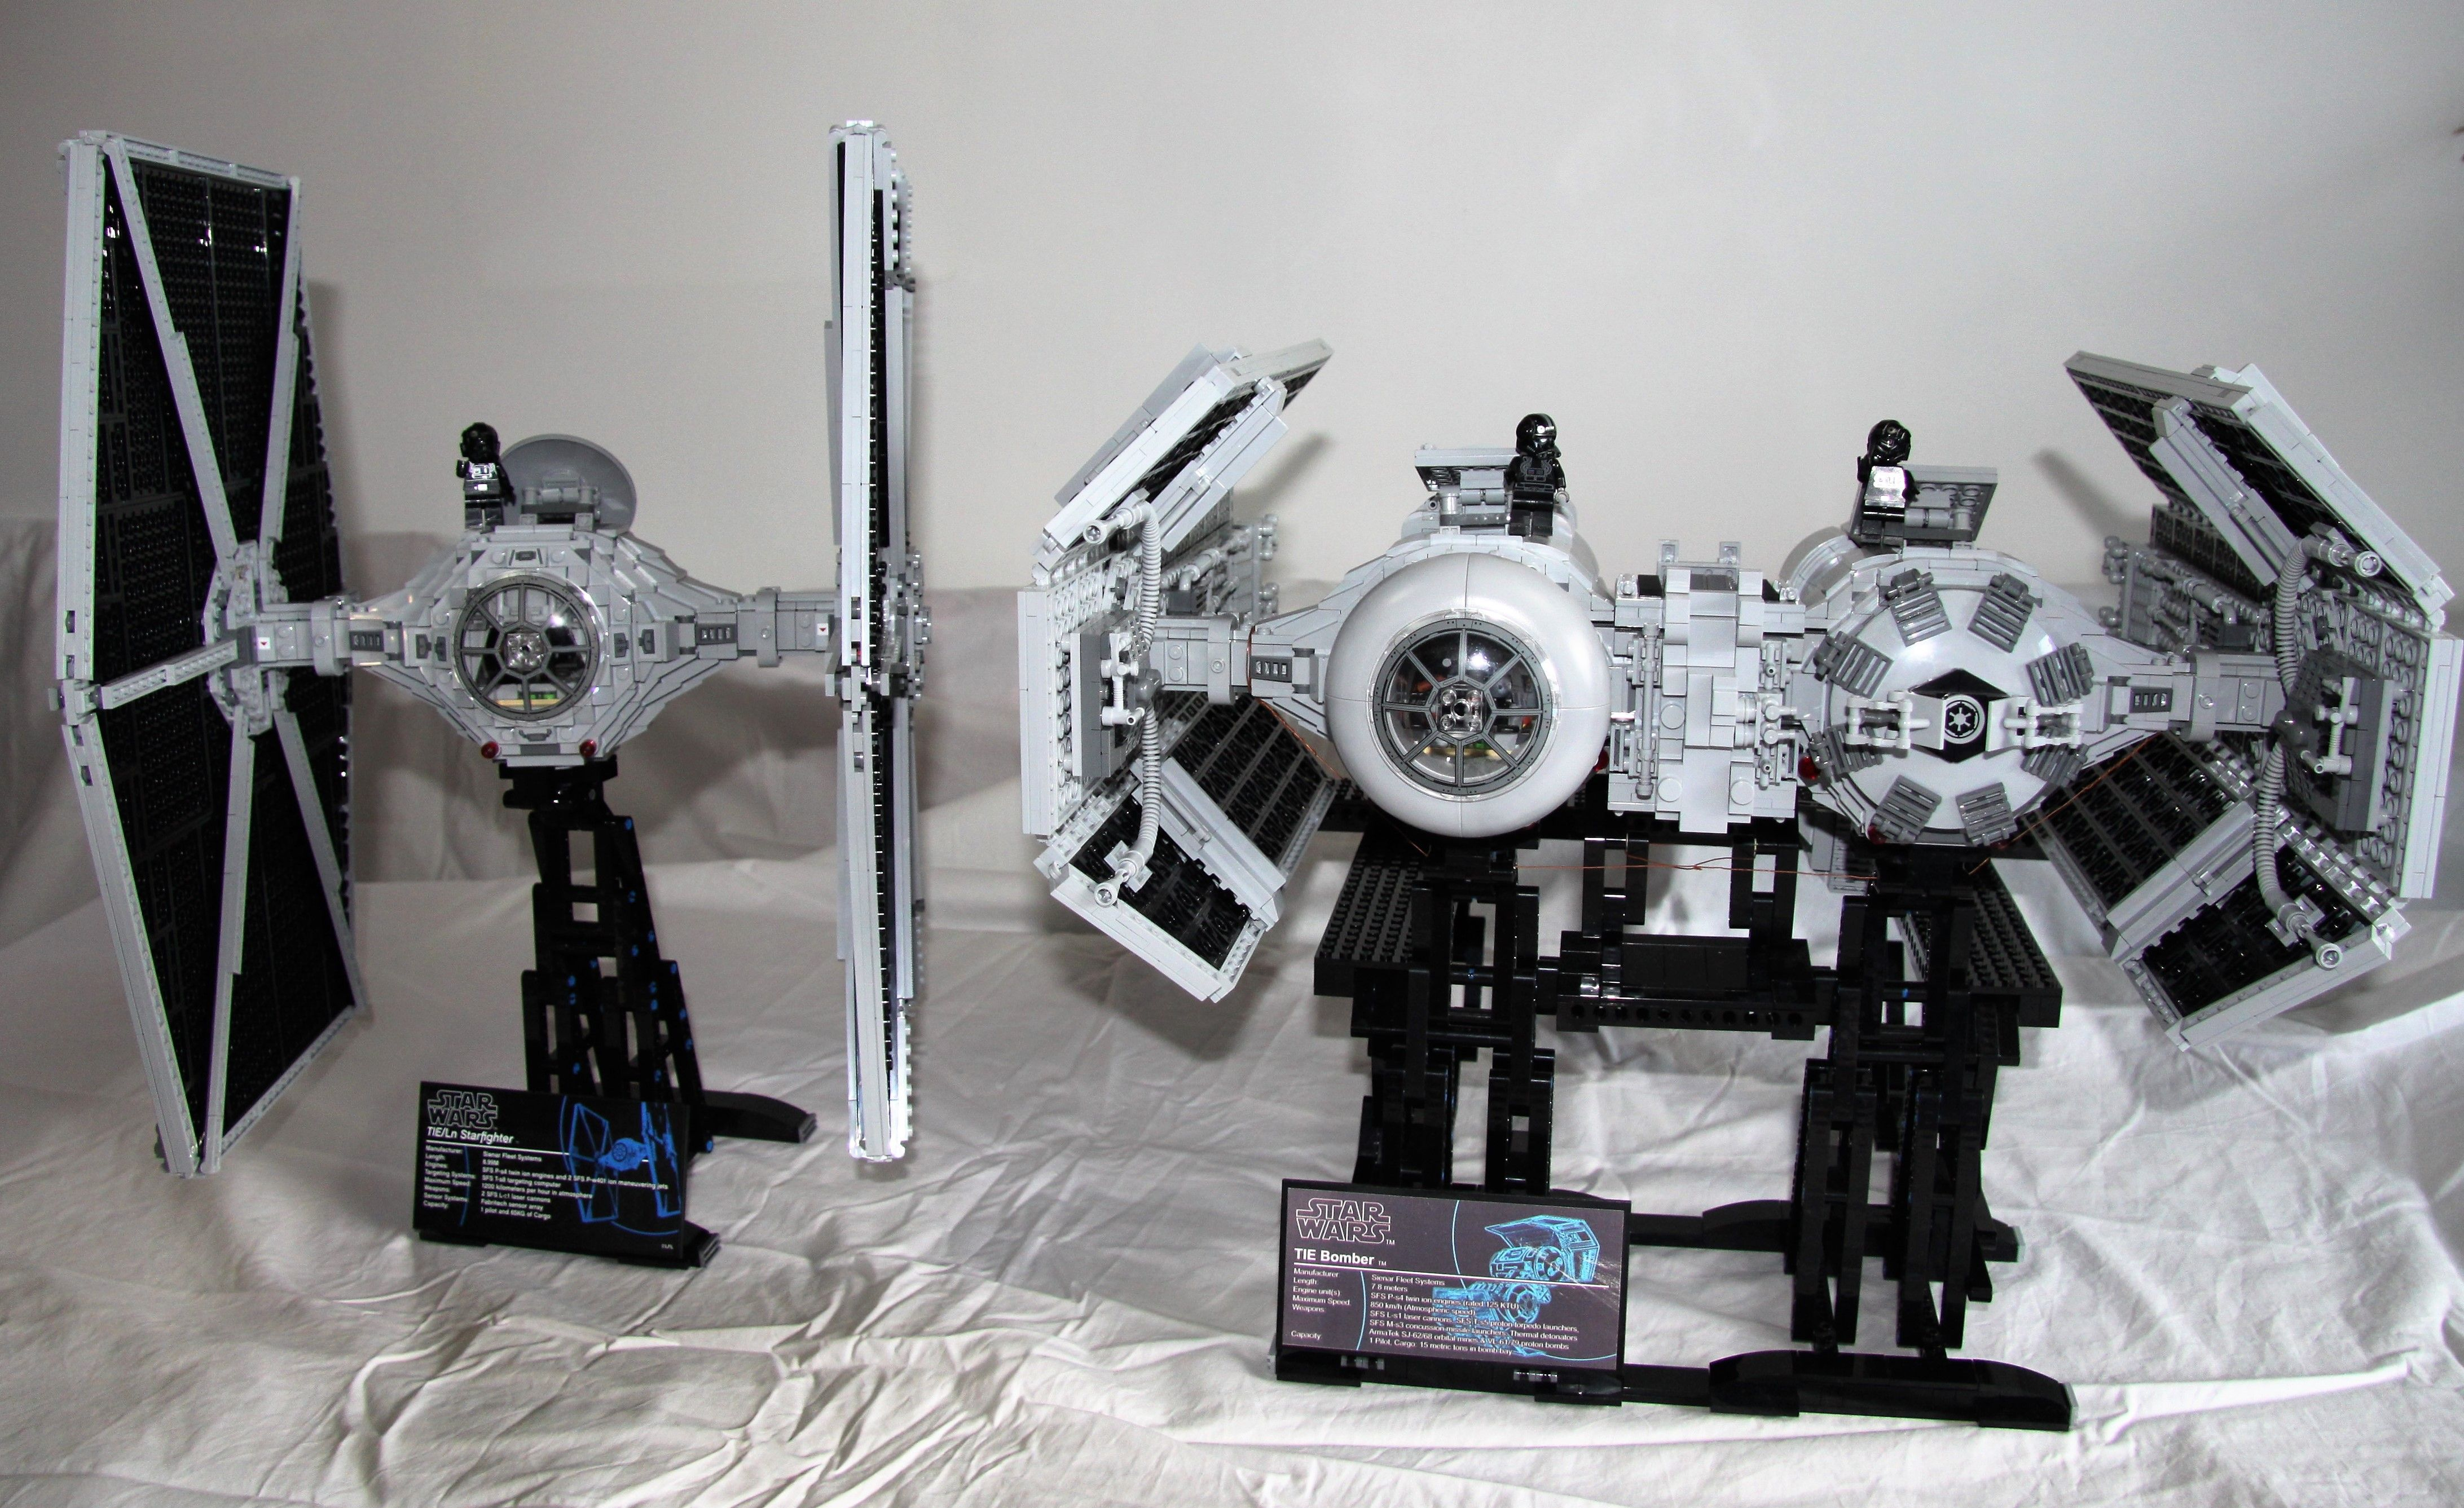 Built To Ucs Scale And Complement The Tie Fighter By Alistair Howat Lego Star Wars Lego Projects Legos